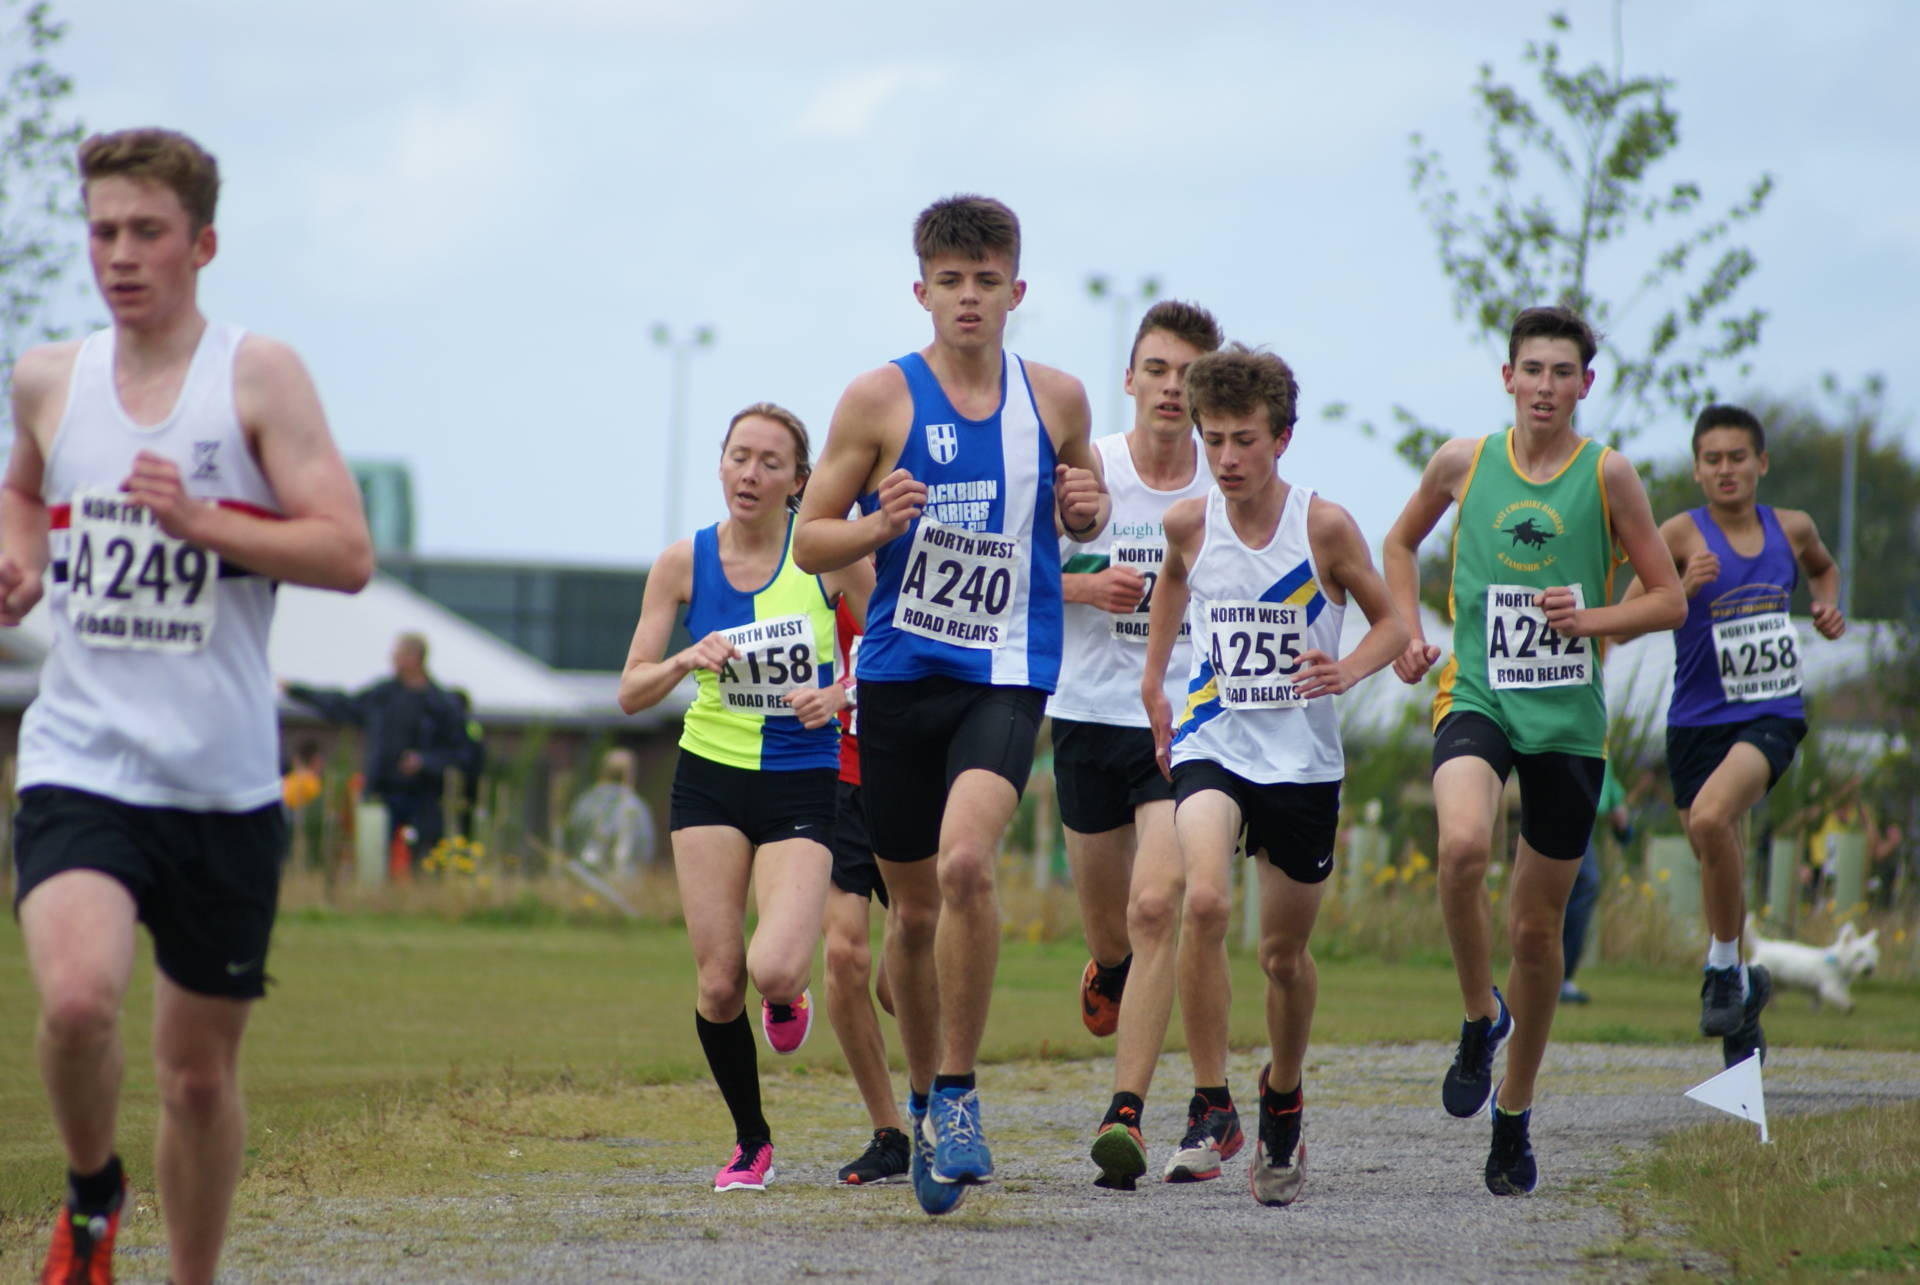 Gold, Silver, Bronze Medals and Fastest Legs for the Harriers at North West Relays